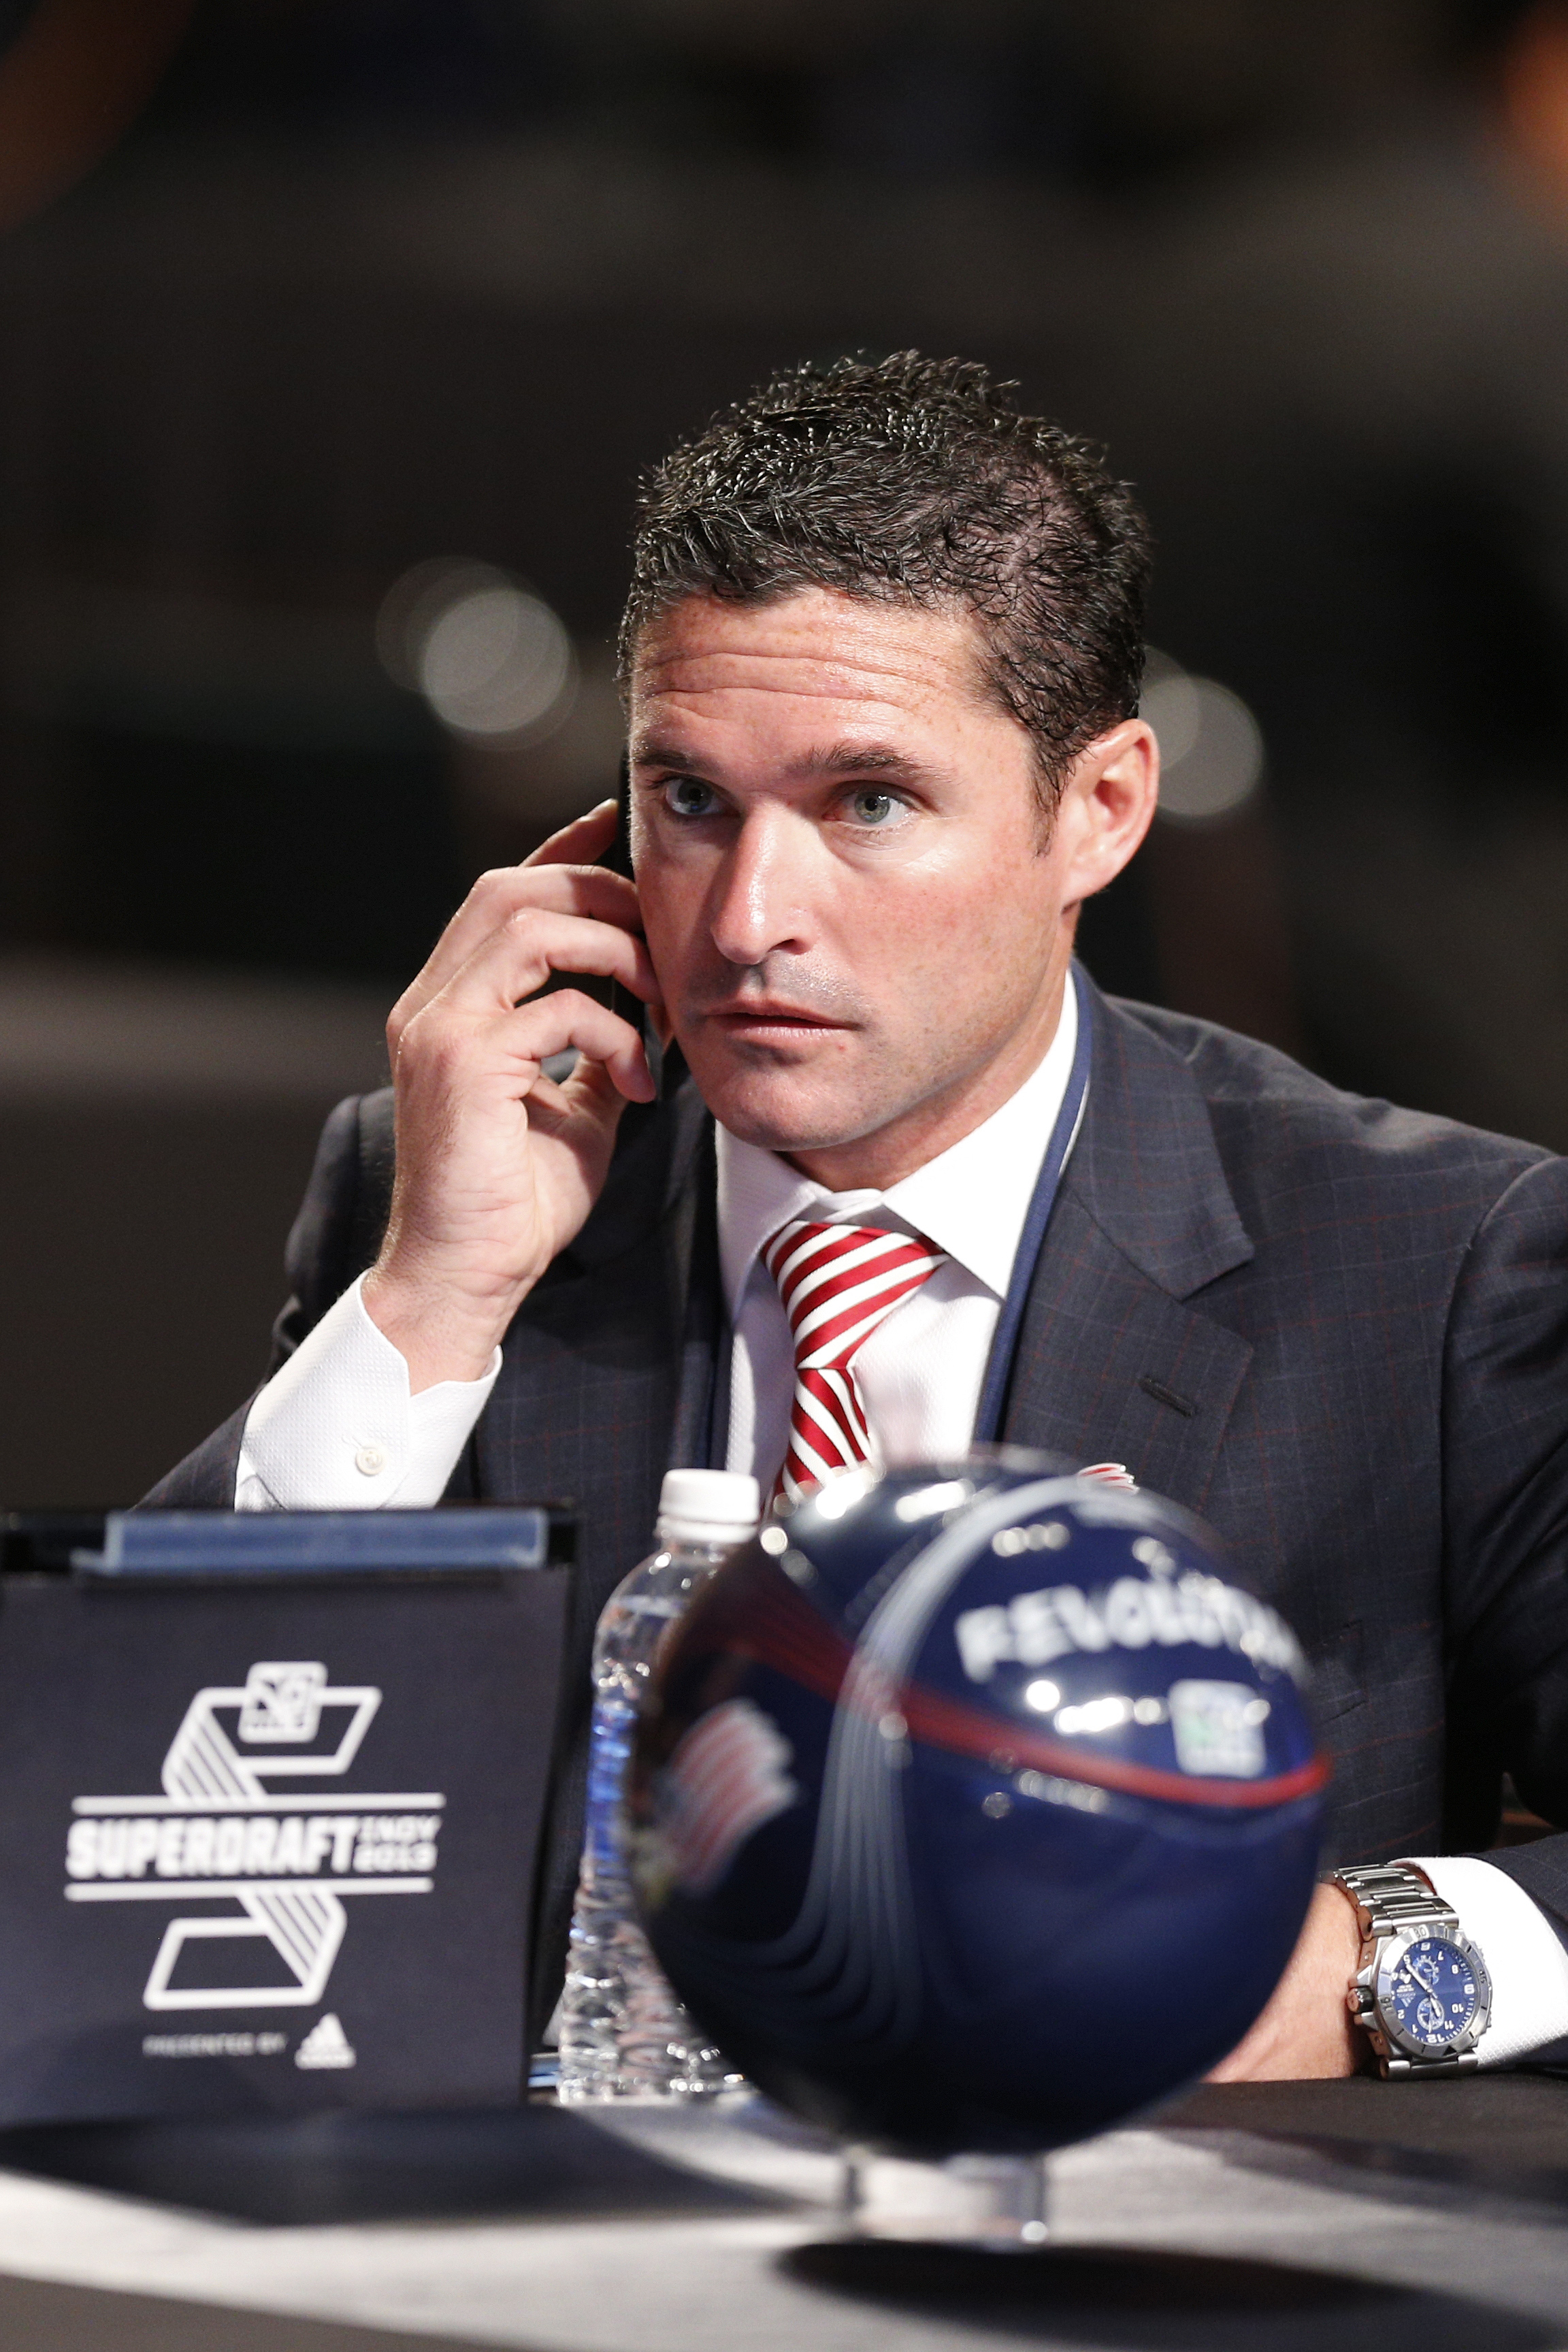 Who has caught Jay Heaps' eye in the college soccer world?